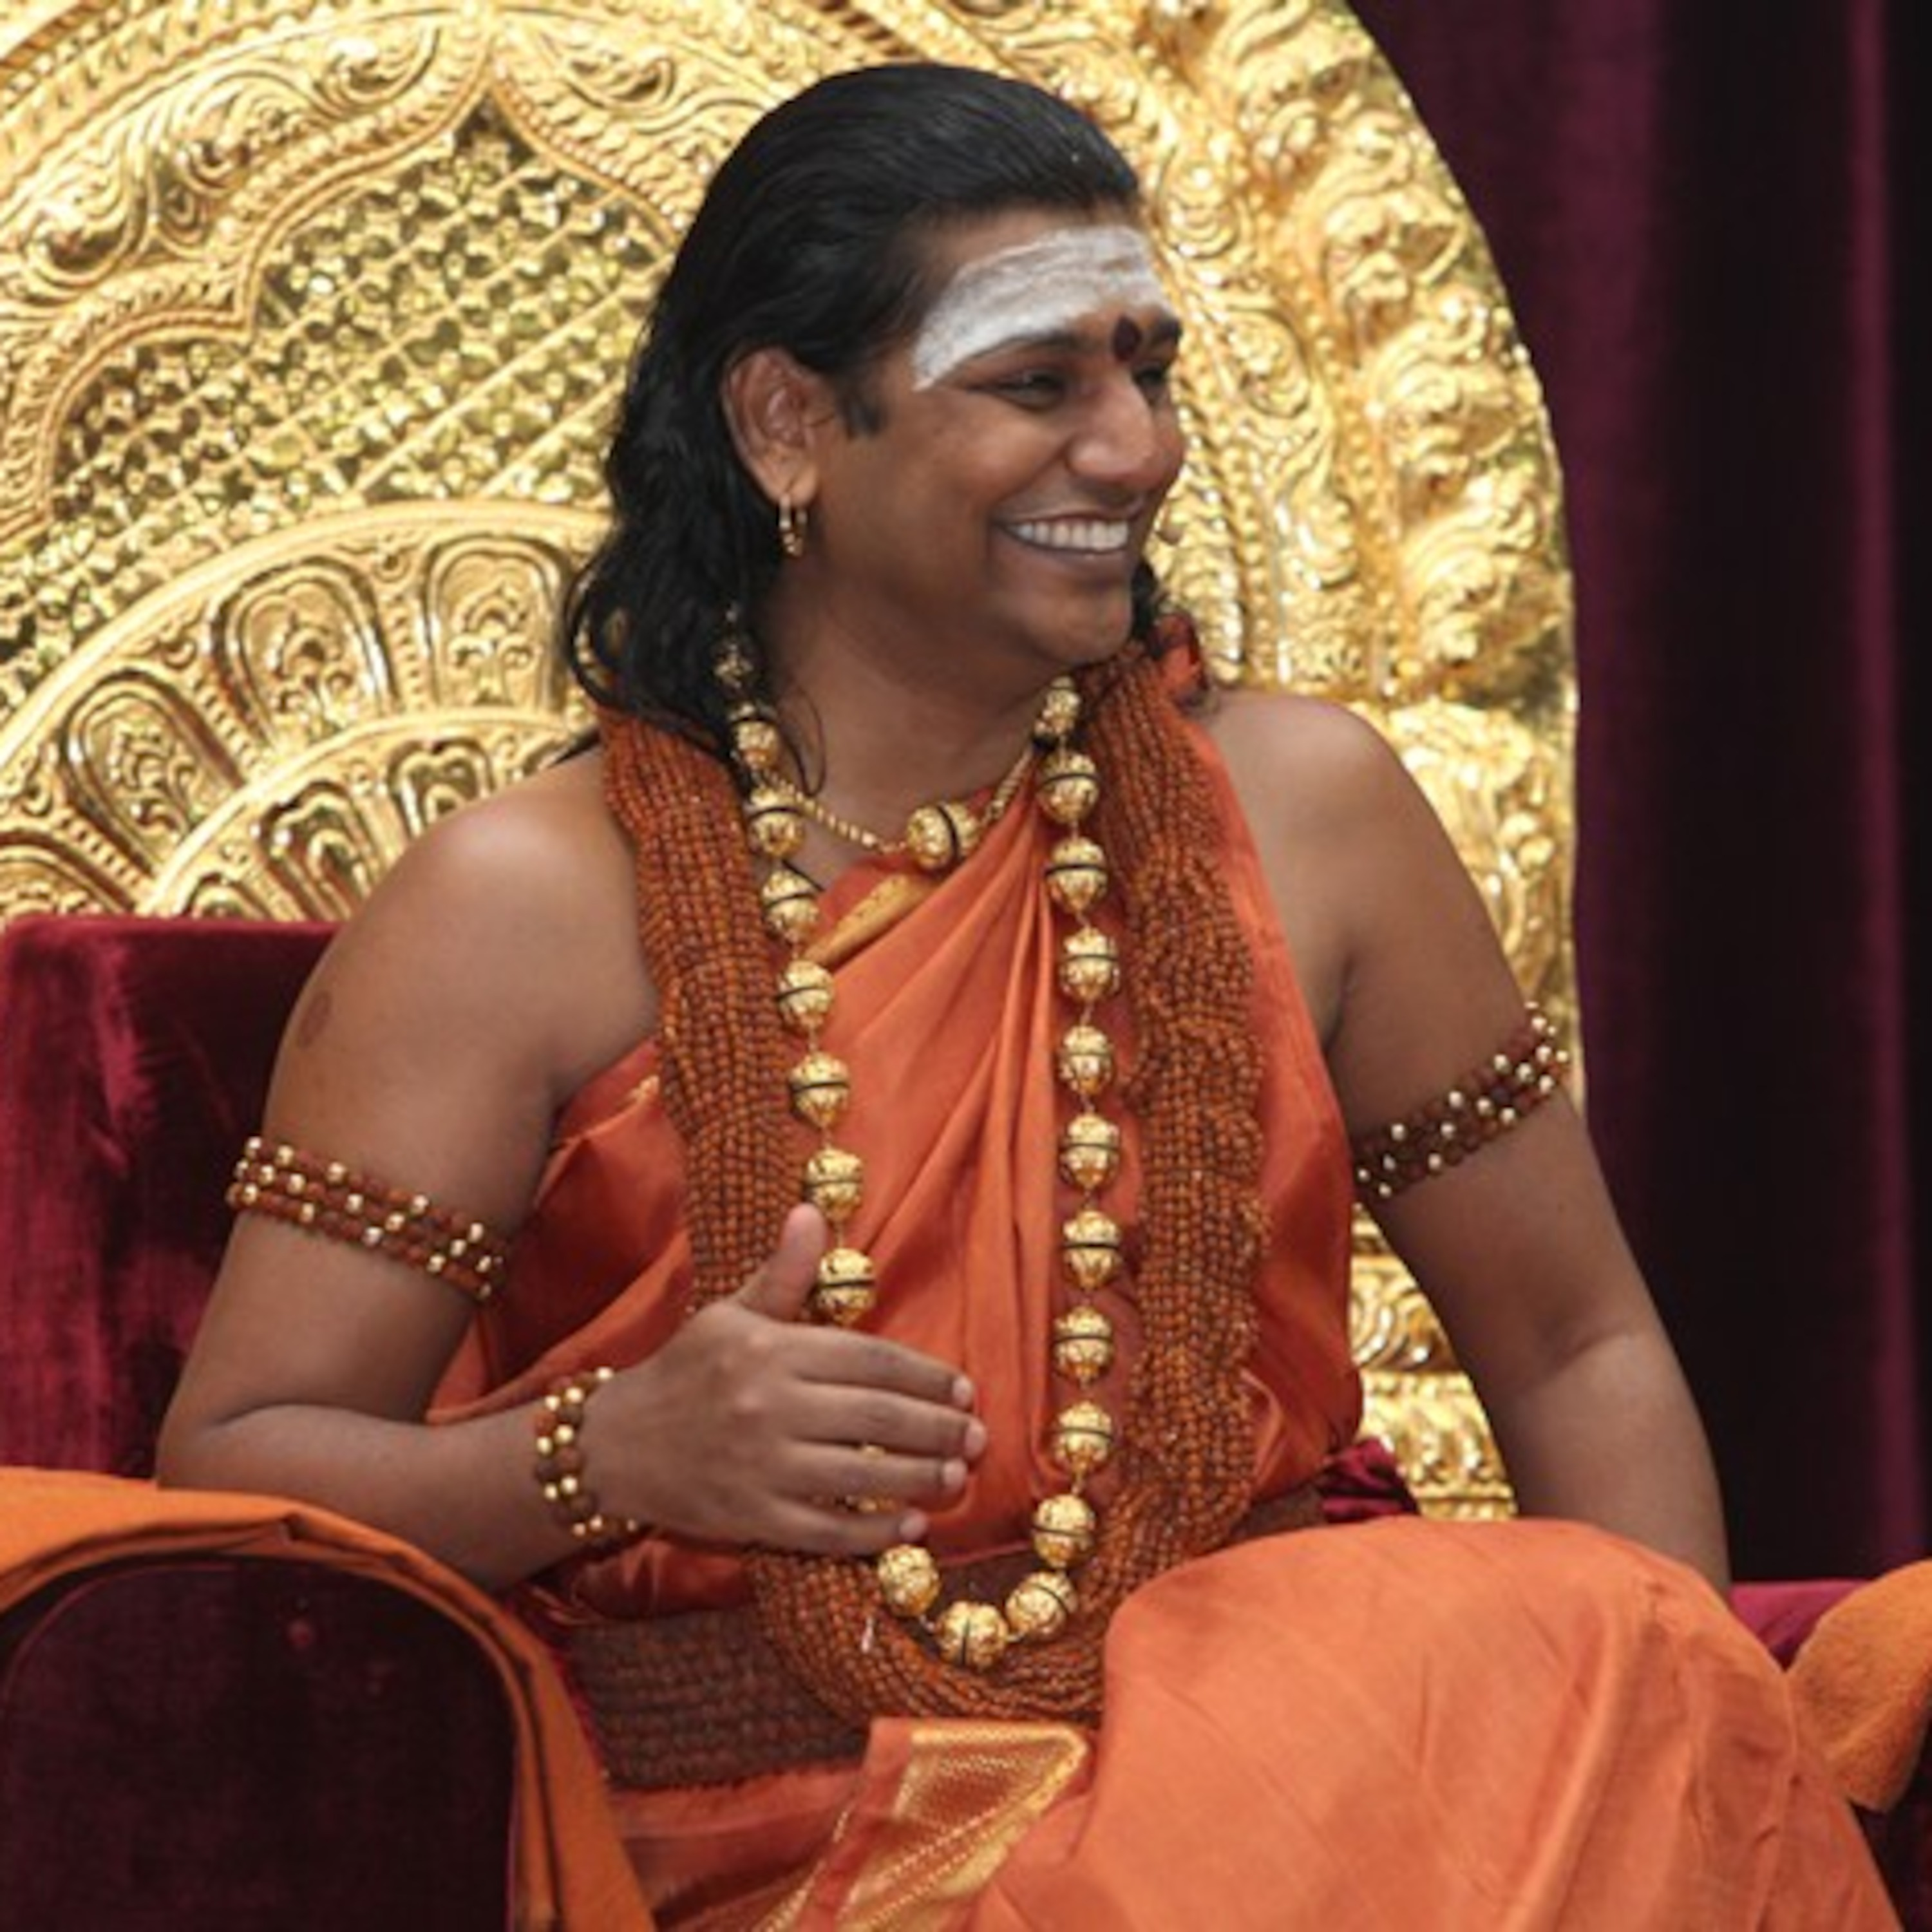 Episode 110 - Nithyananda Podcast - A Life Without Fear is Possible, Part II